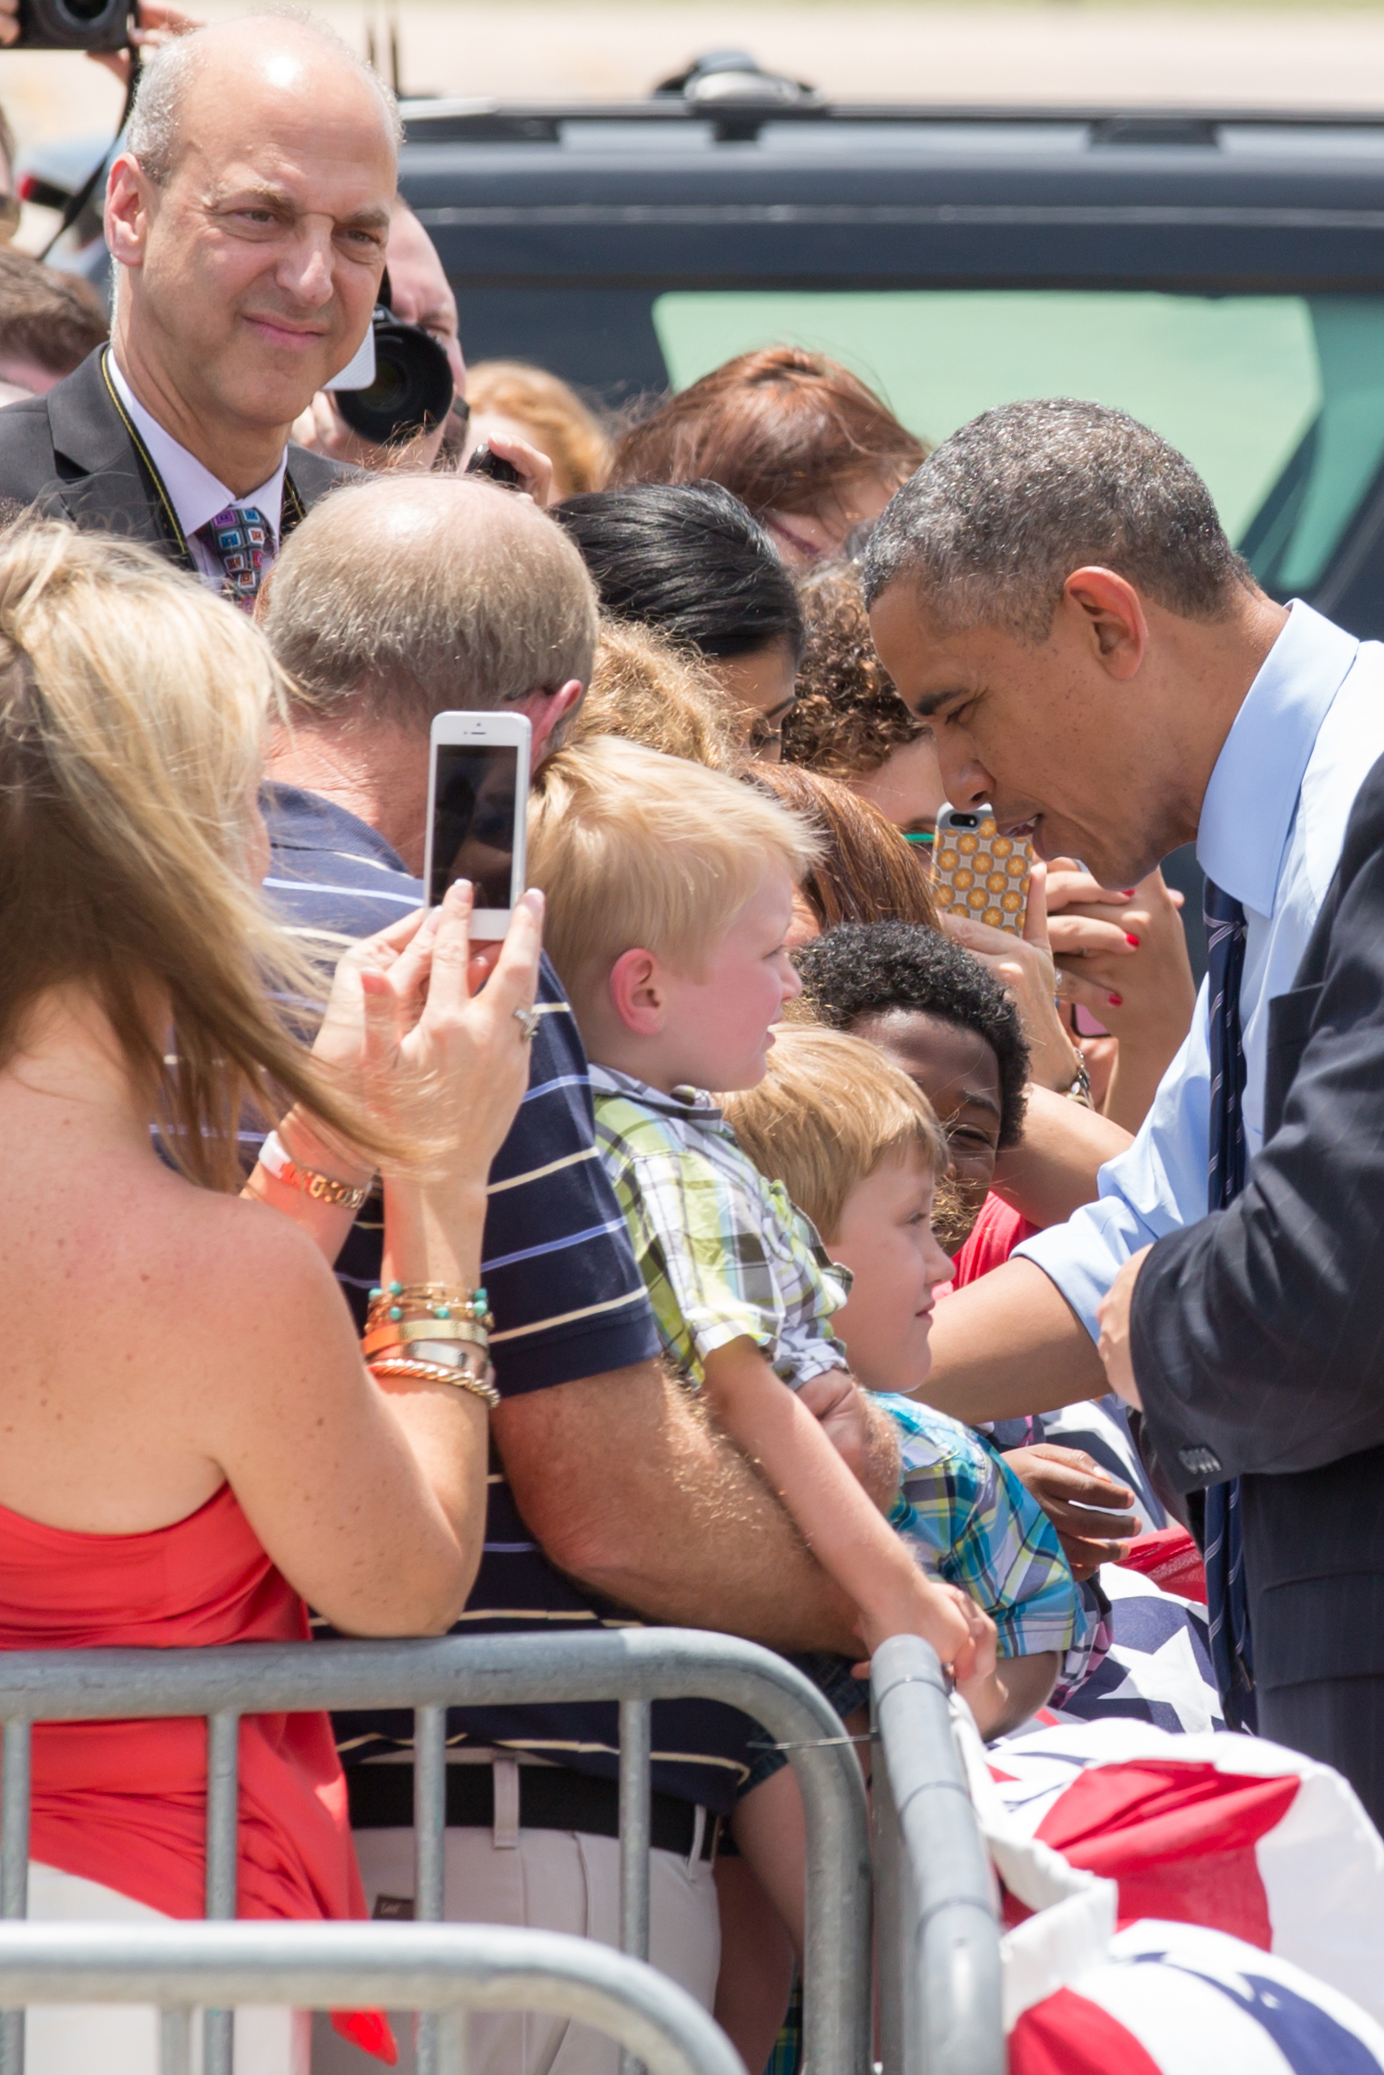 President Barack Obama signs autographs before entering Air Force One in Austin, TX in 2015.